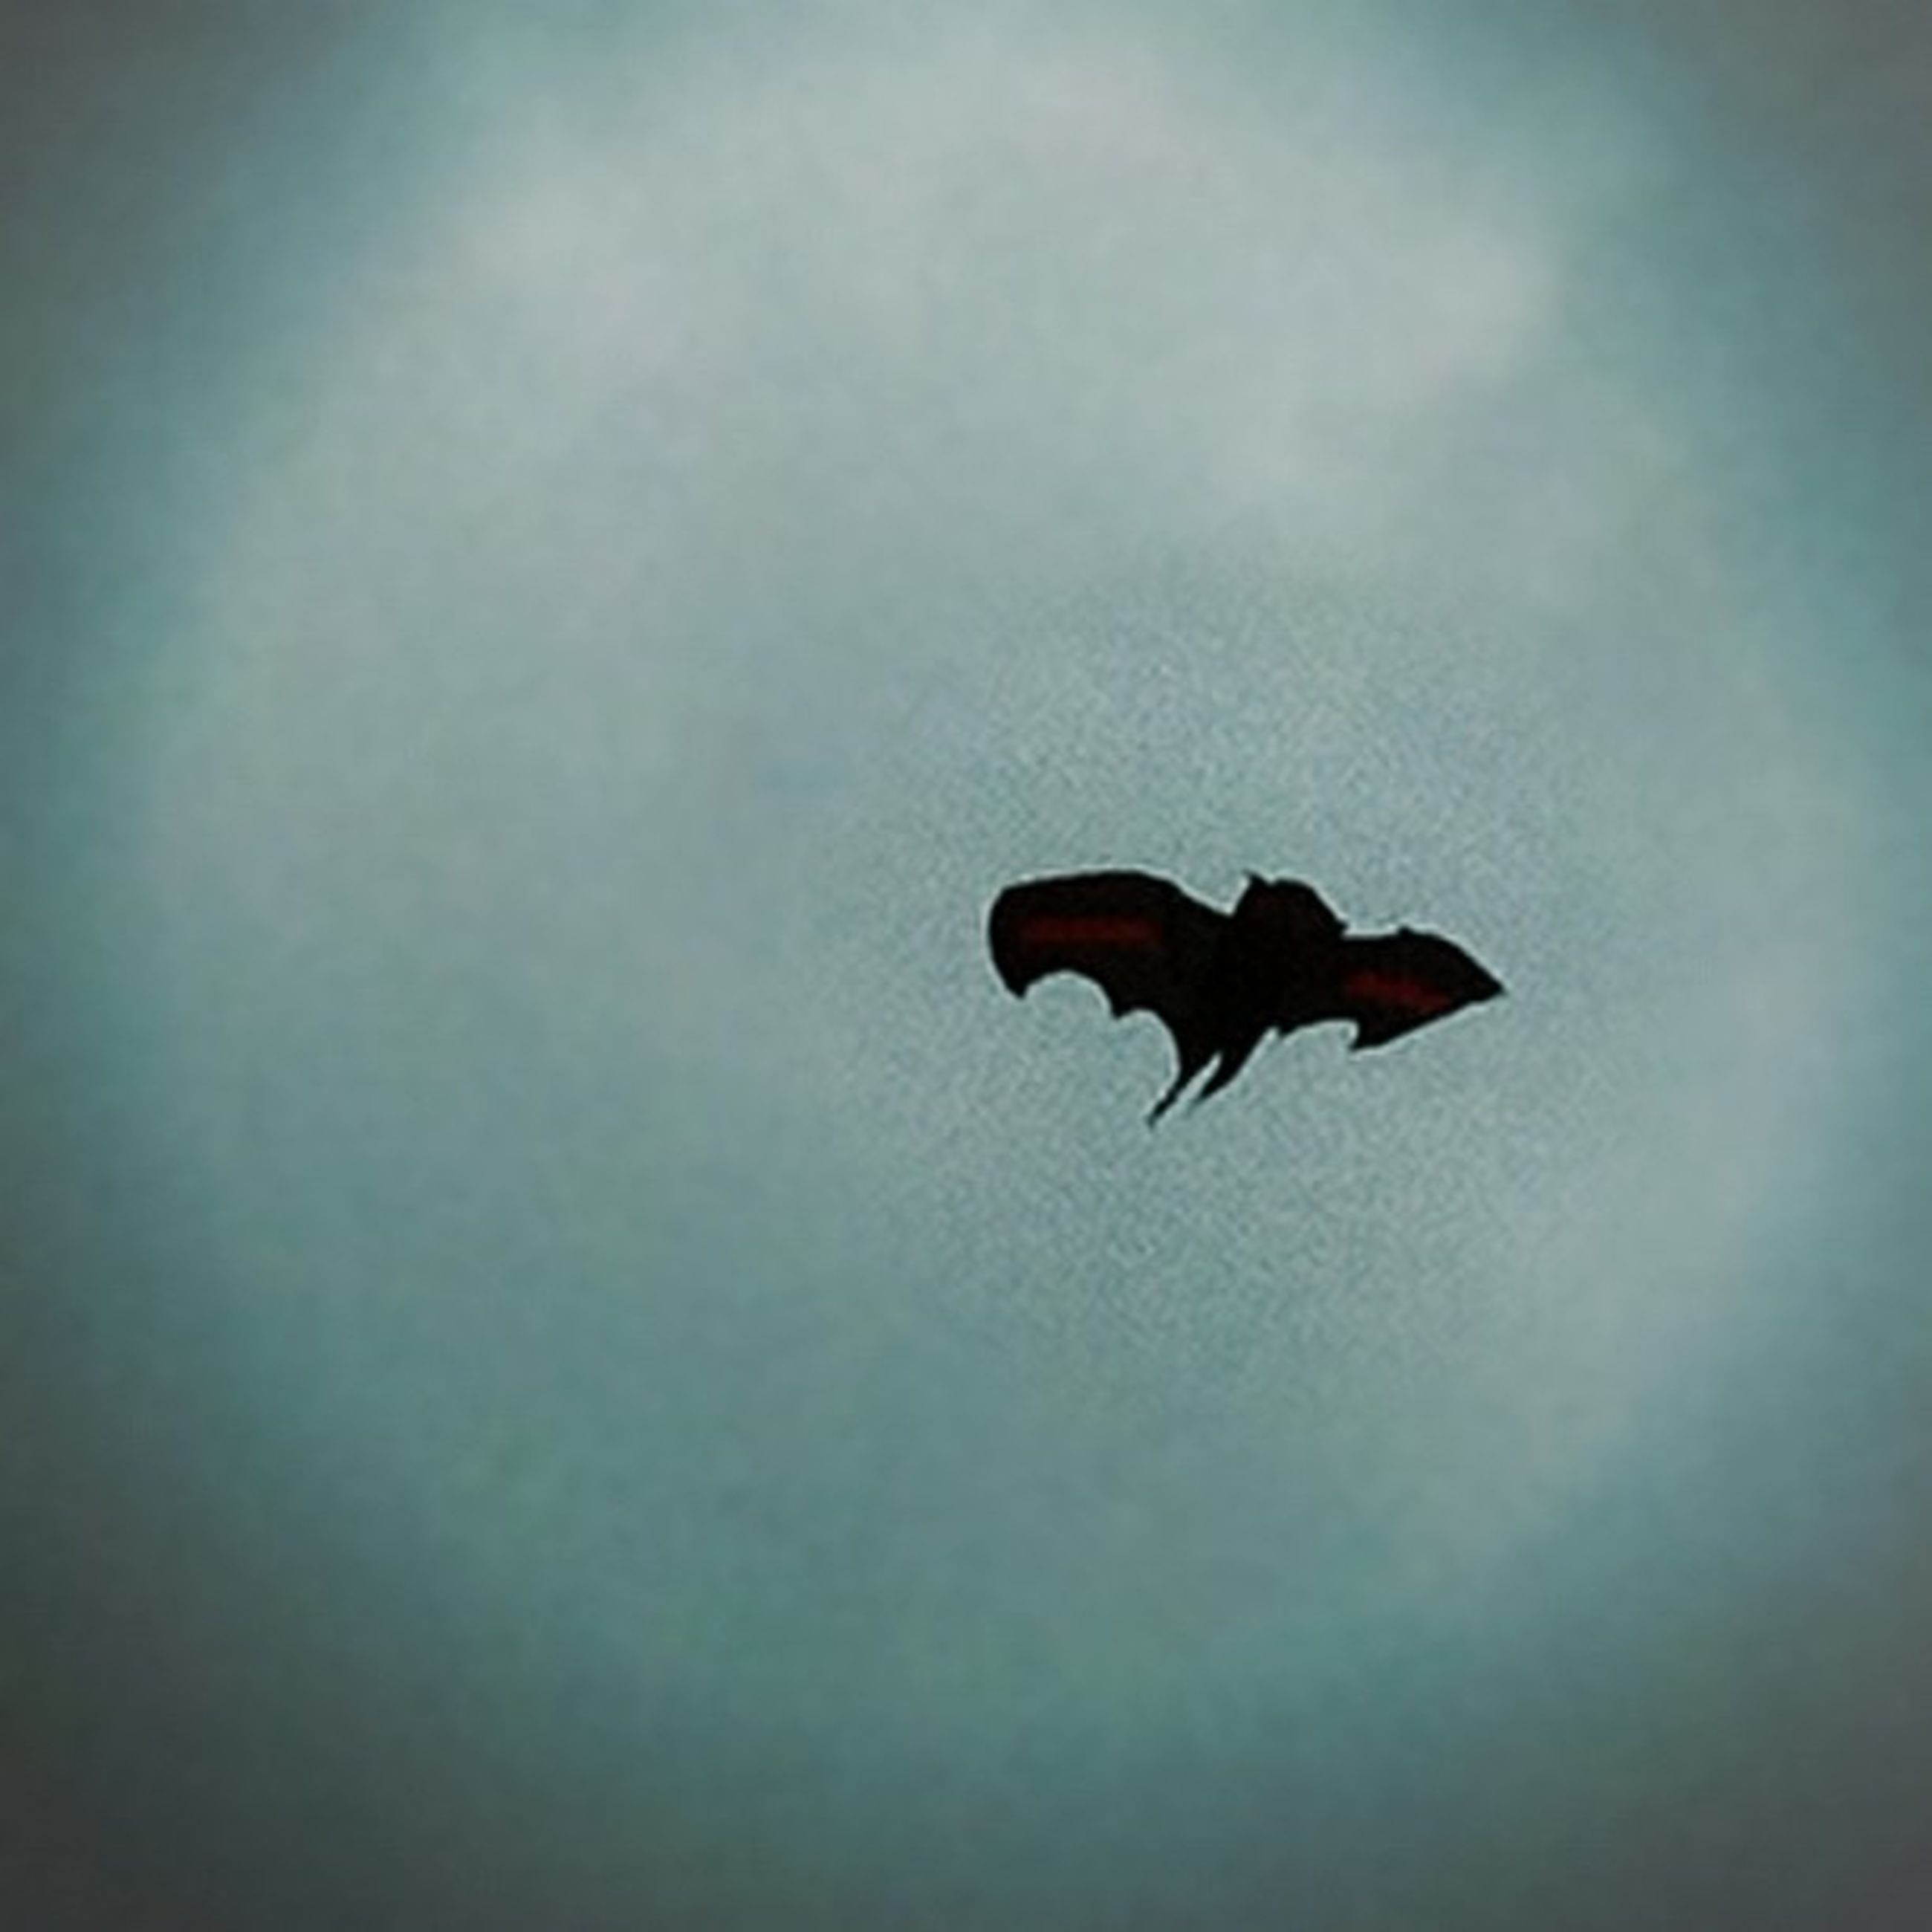 flying, mid-air, animal themes, low angle view, one animal, animals in the wild, silhouette, wildlife, spread wings, sky, full length, nature, insect, outdoors, copy space, day, beauty in nature, cloud - sky, motion, freedom